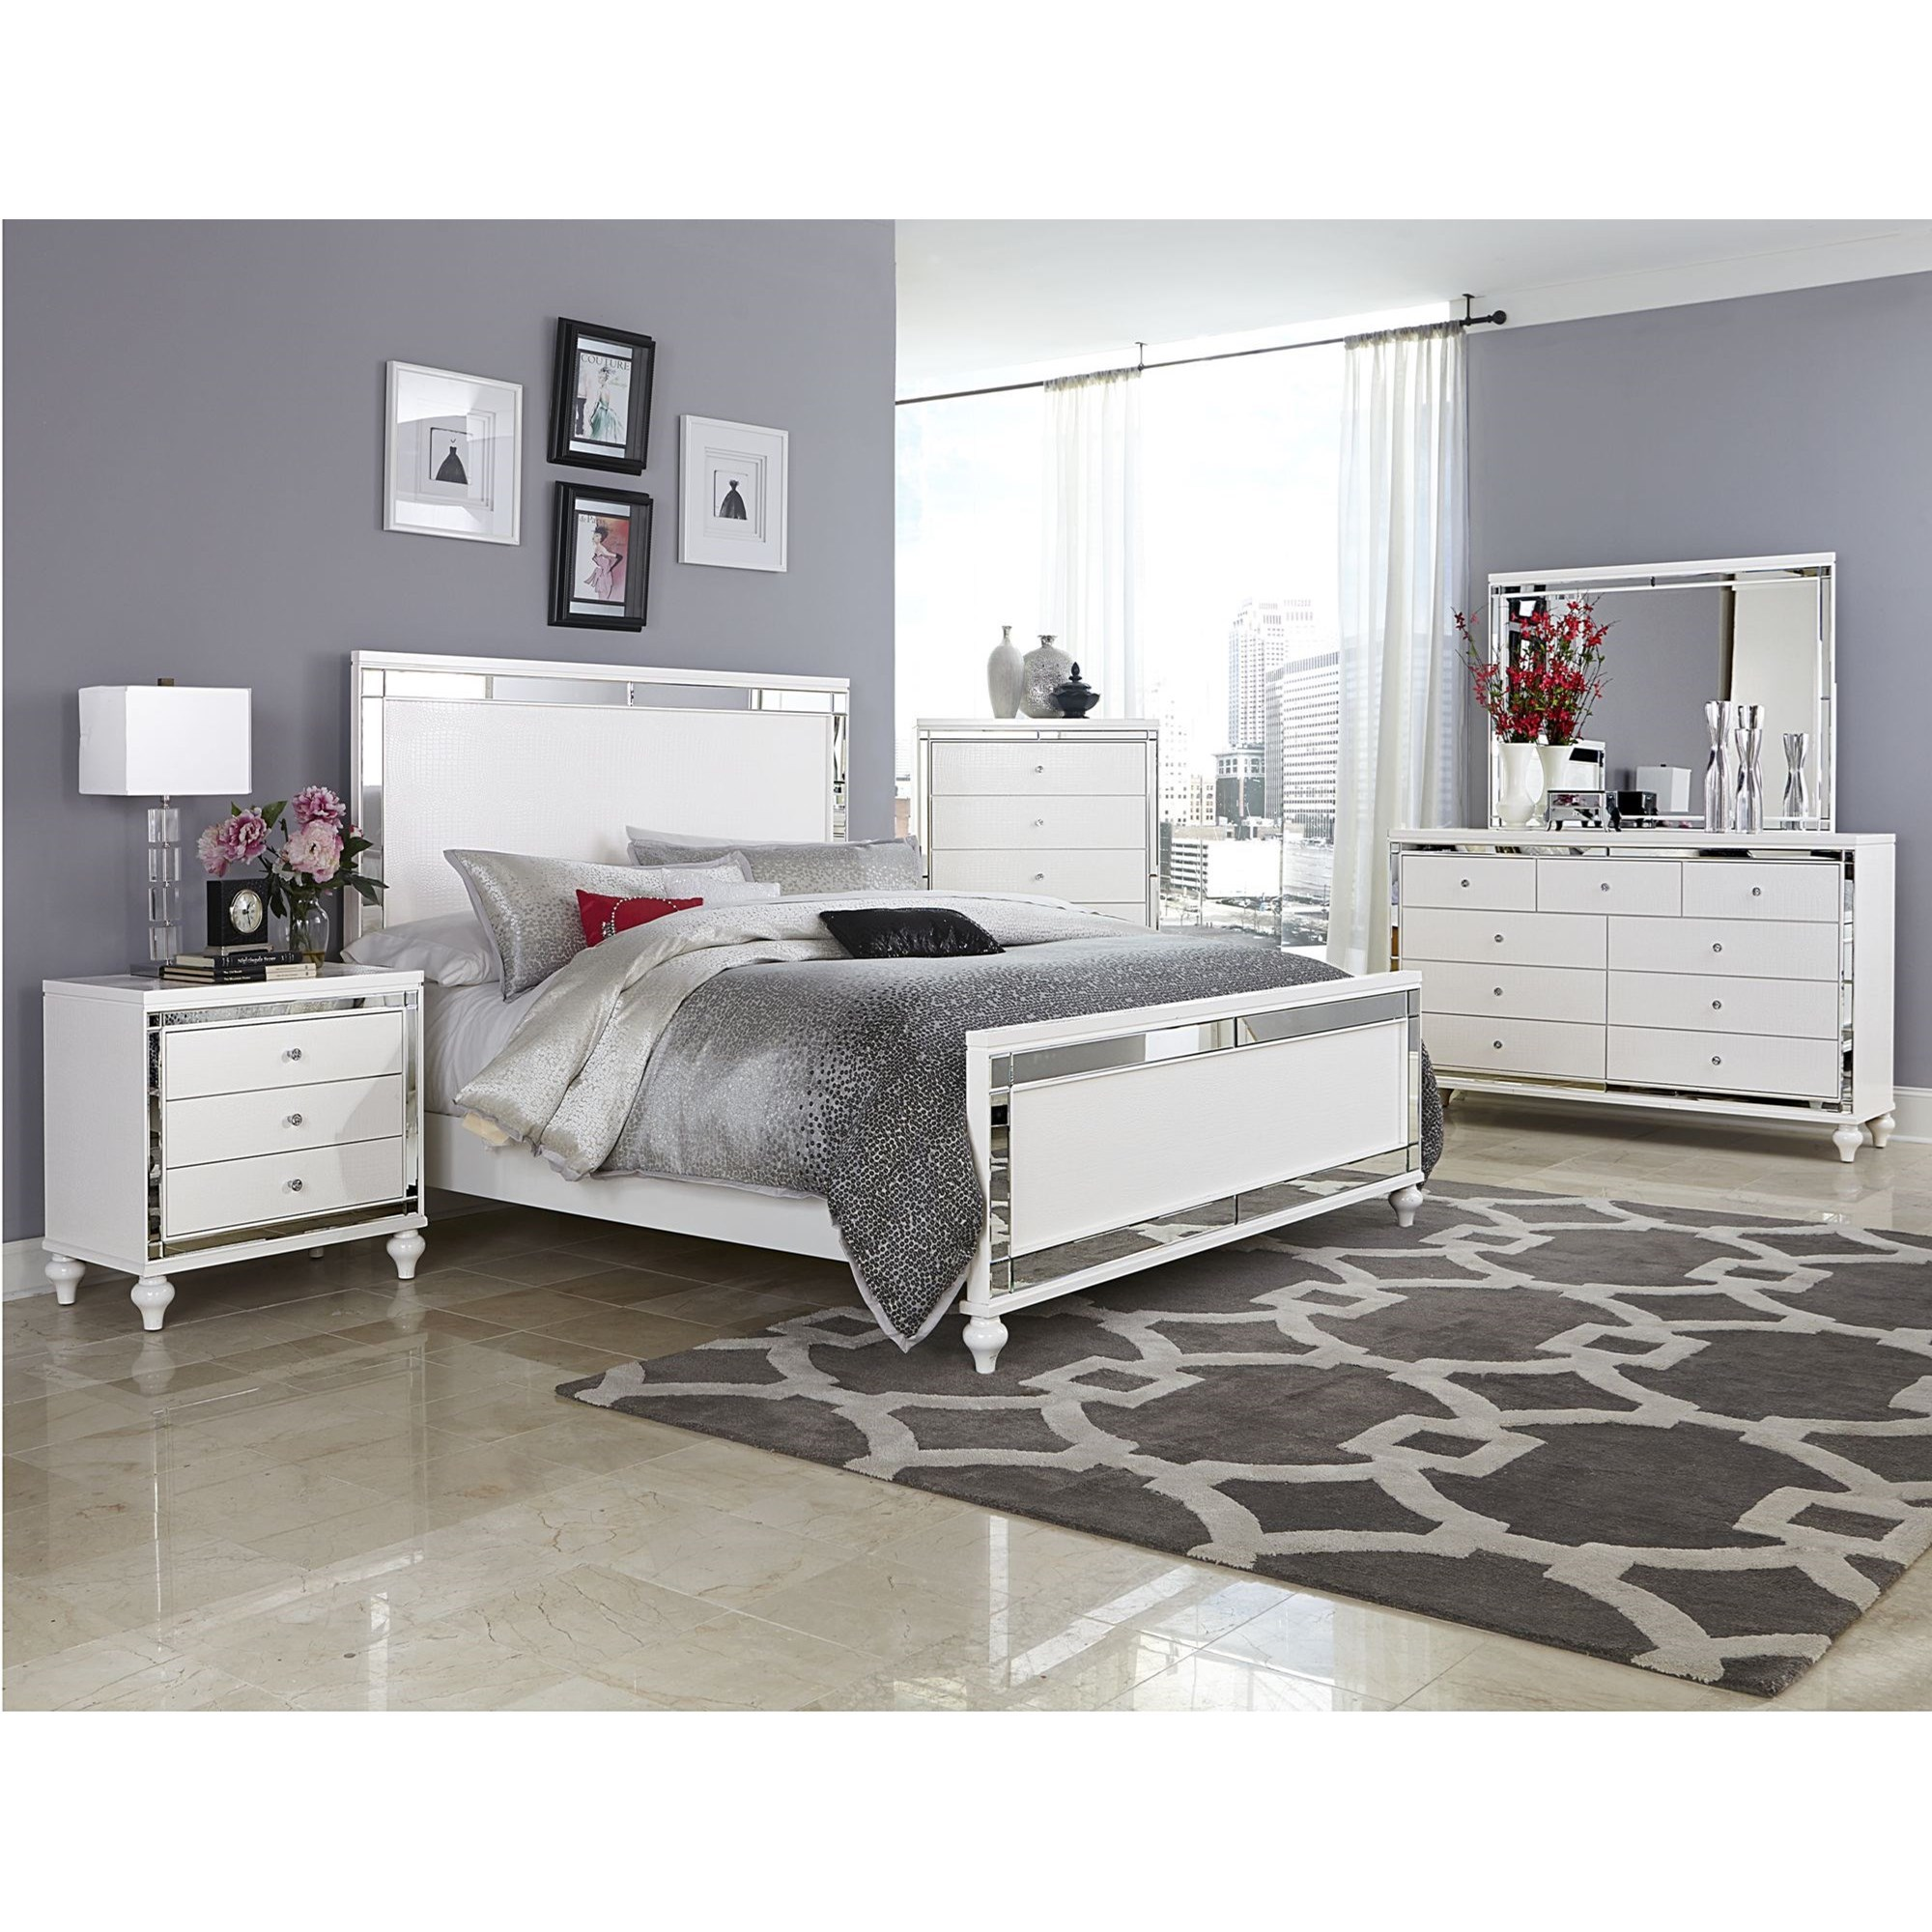 Alonza King Bedroom Group by Homelegance at Simply Home by Lindy's